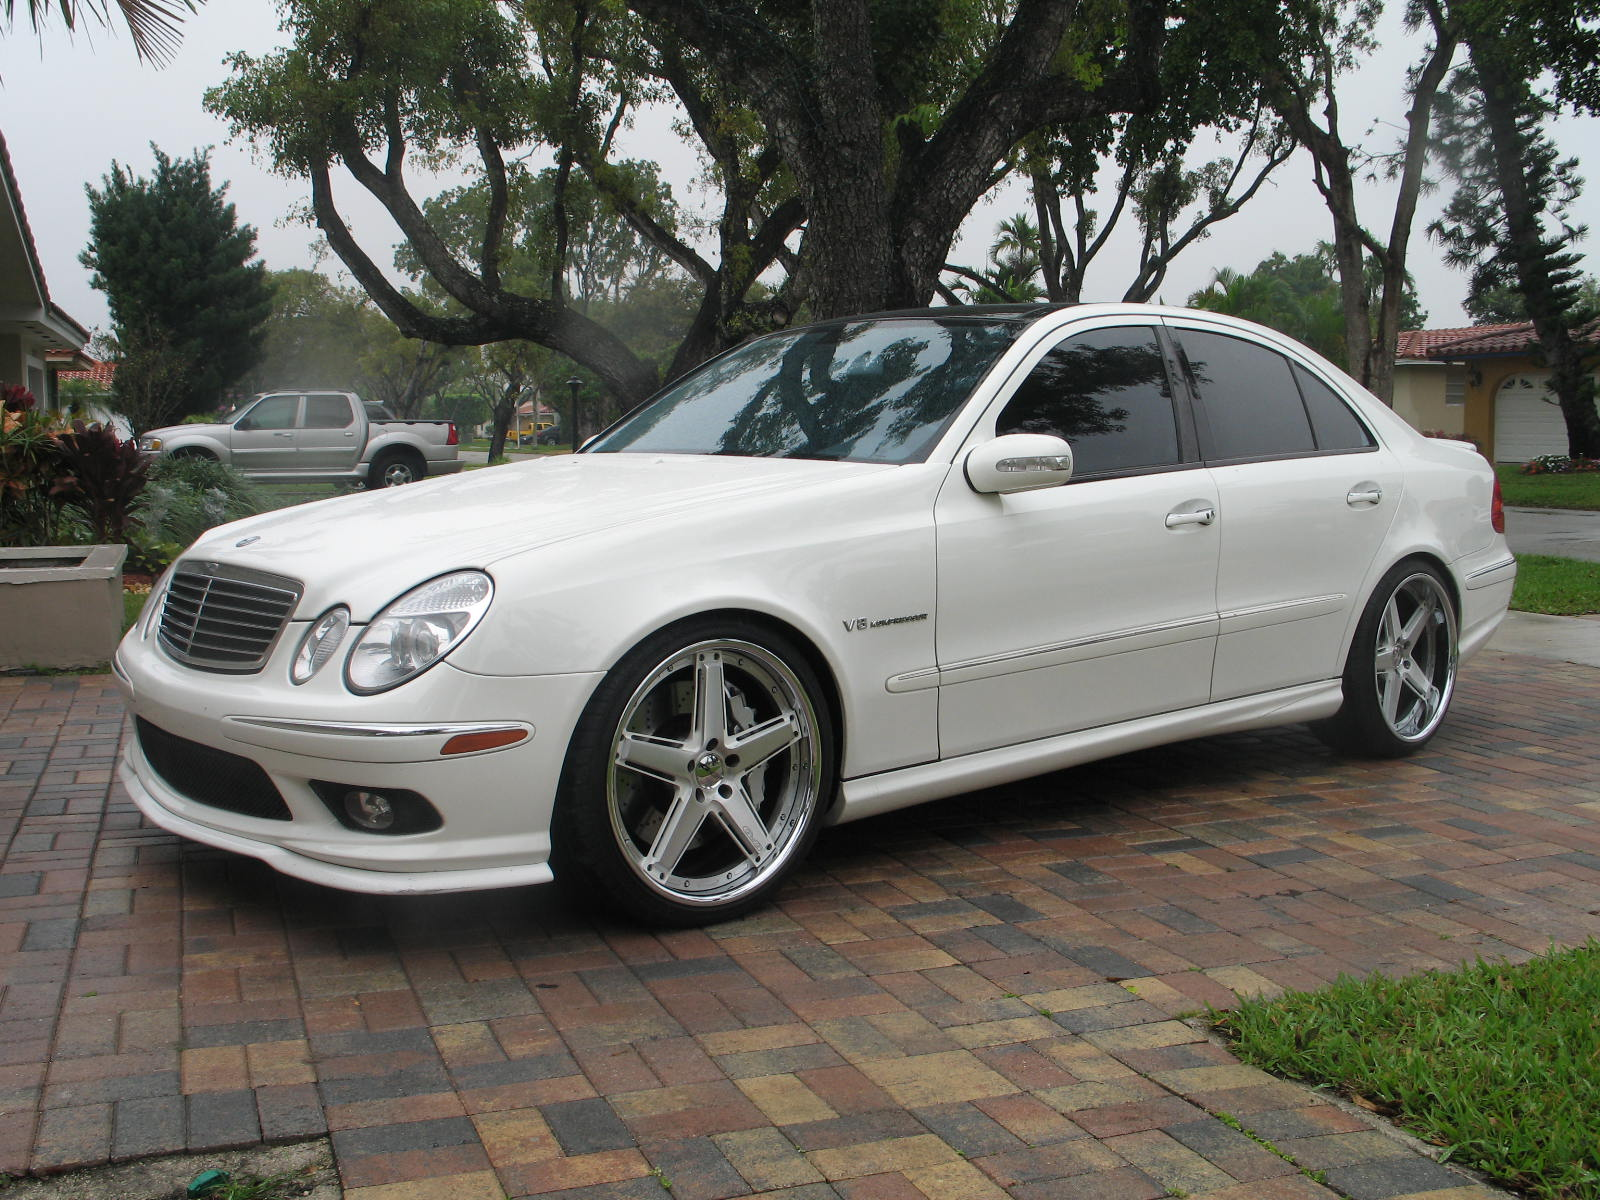 2005 Mercedes-Benz E55 AMG E55K 1/4 mile Drag Racing